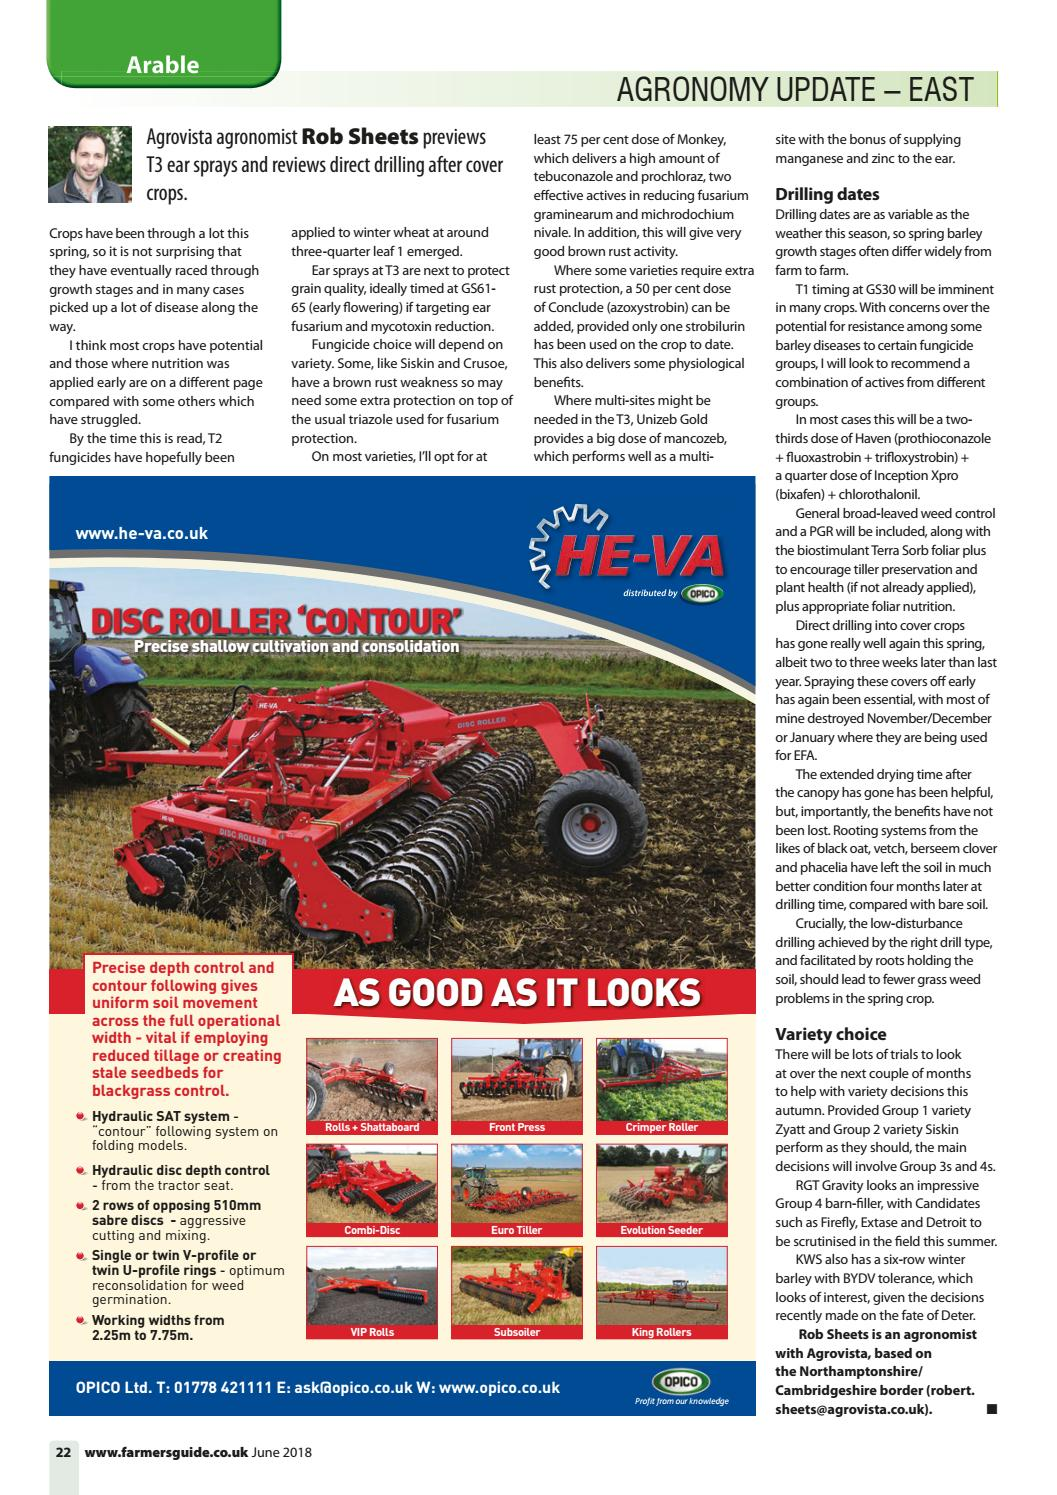 Farmers Guide June 2018 by Farmers Guide - issuu